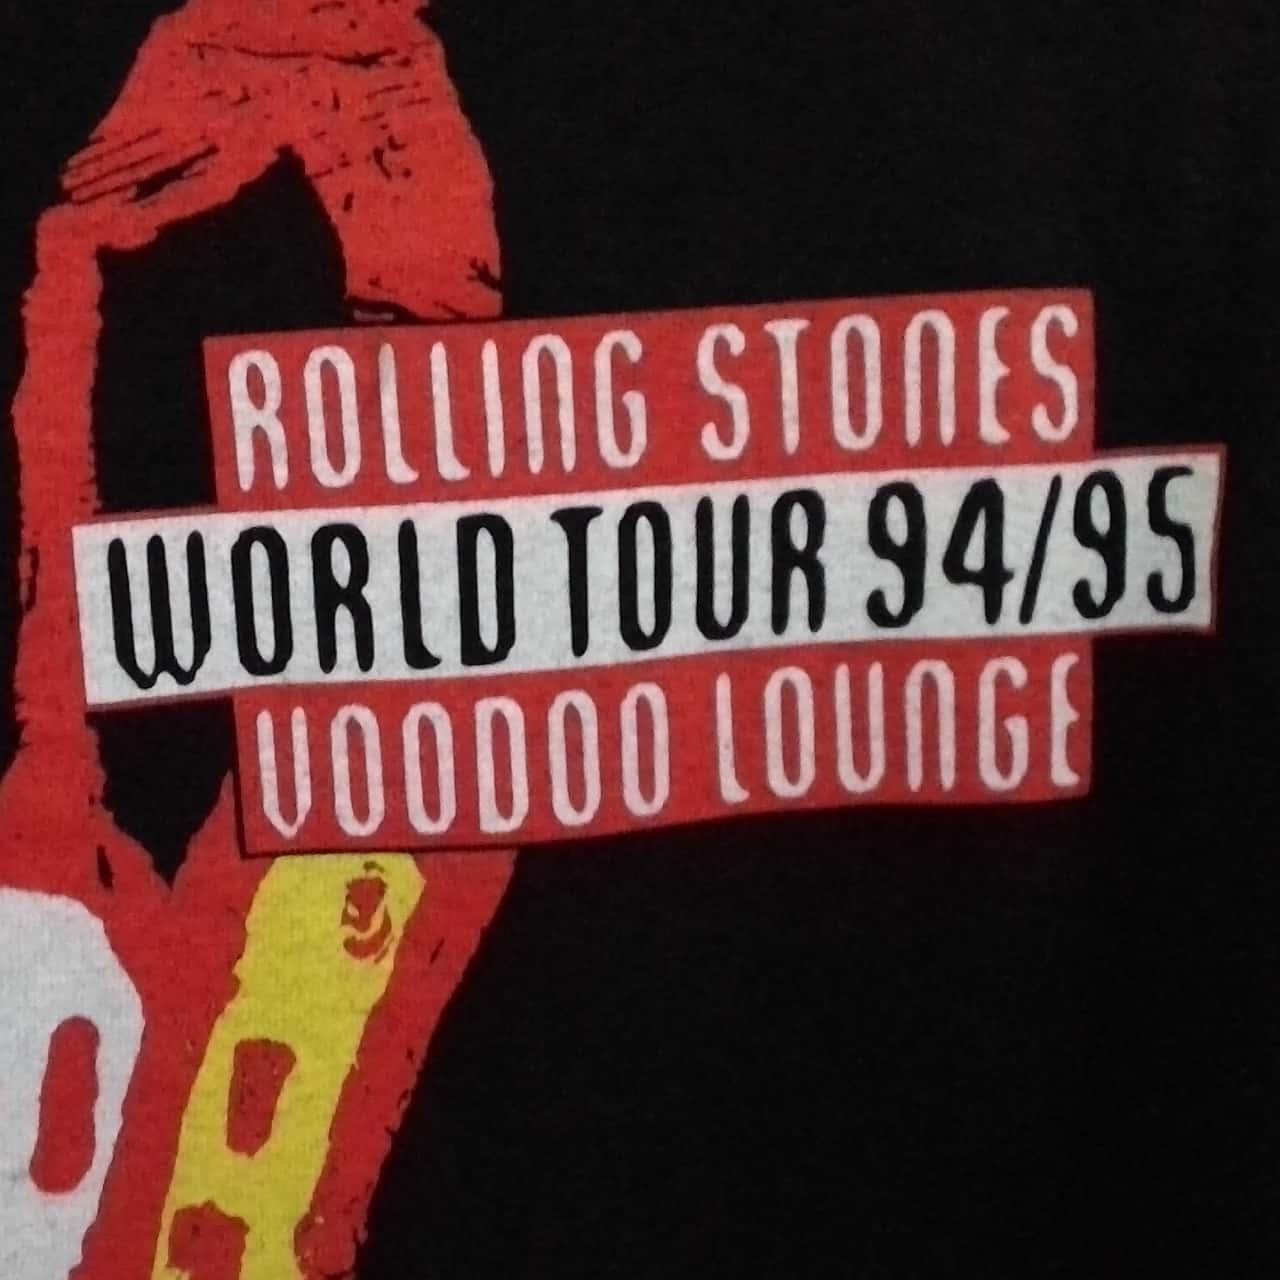 Mens  VINTAGE ROLLING STONES VOODOO LOUNGE TOUR SHIRT 94-95 Size M T-Shirt Black /Red/White